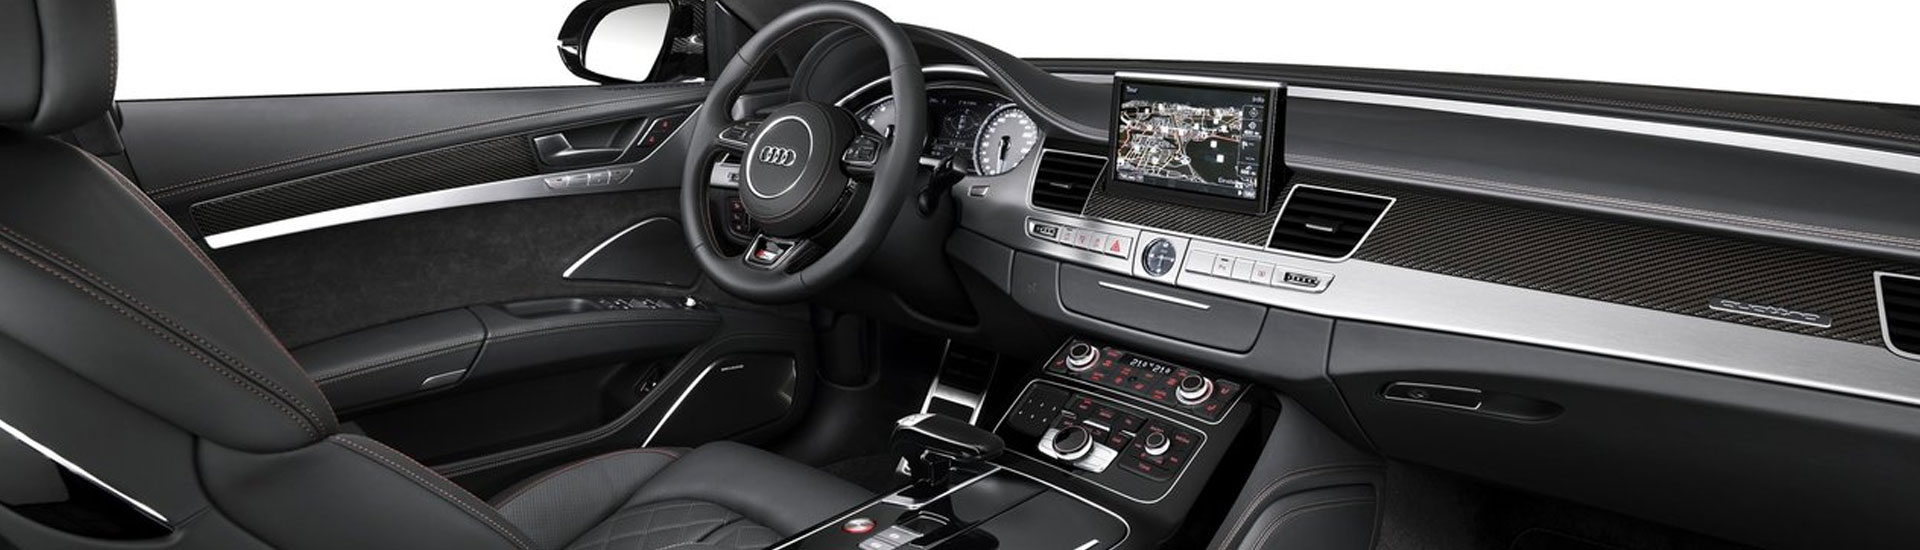 2014 Audi A7 Custom Dash Kits